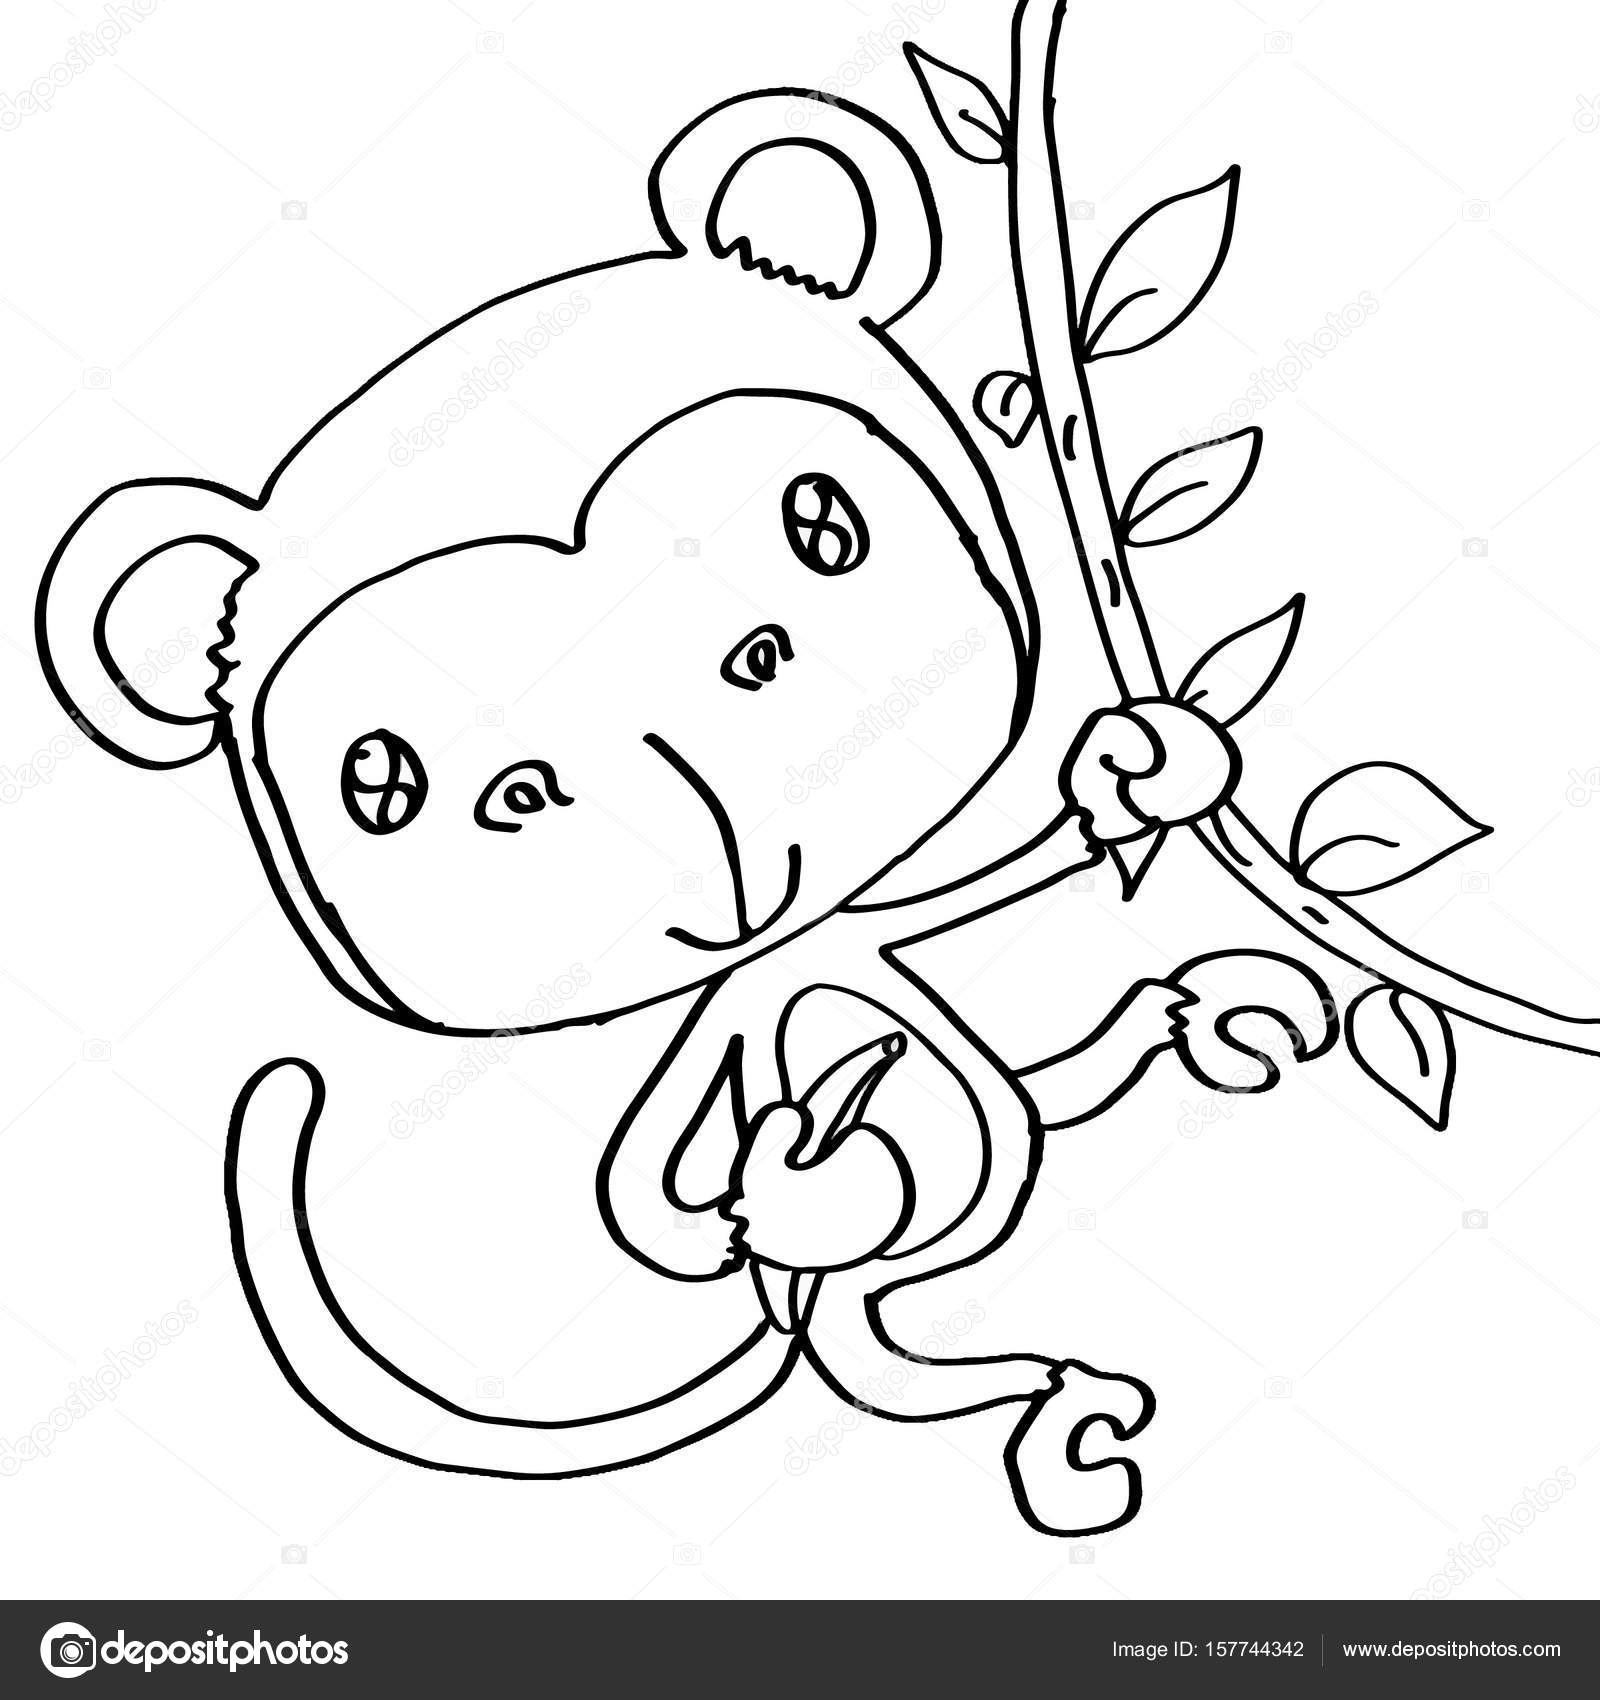 Brown Monkey Coloring Stock Photo C Designartks 157744342